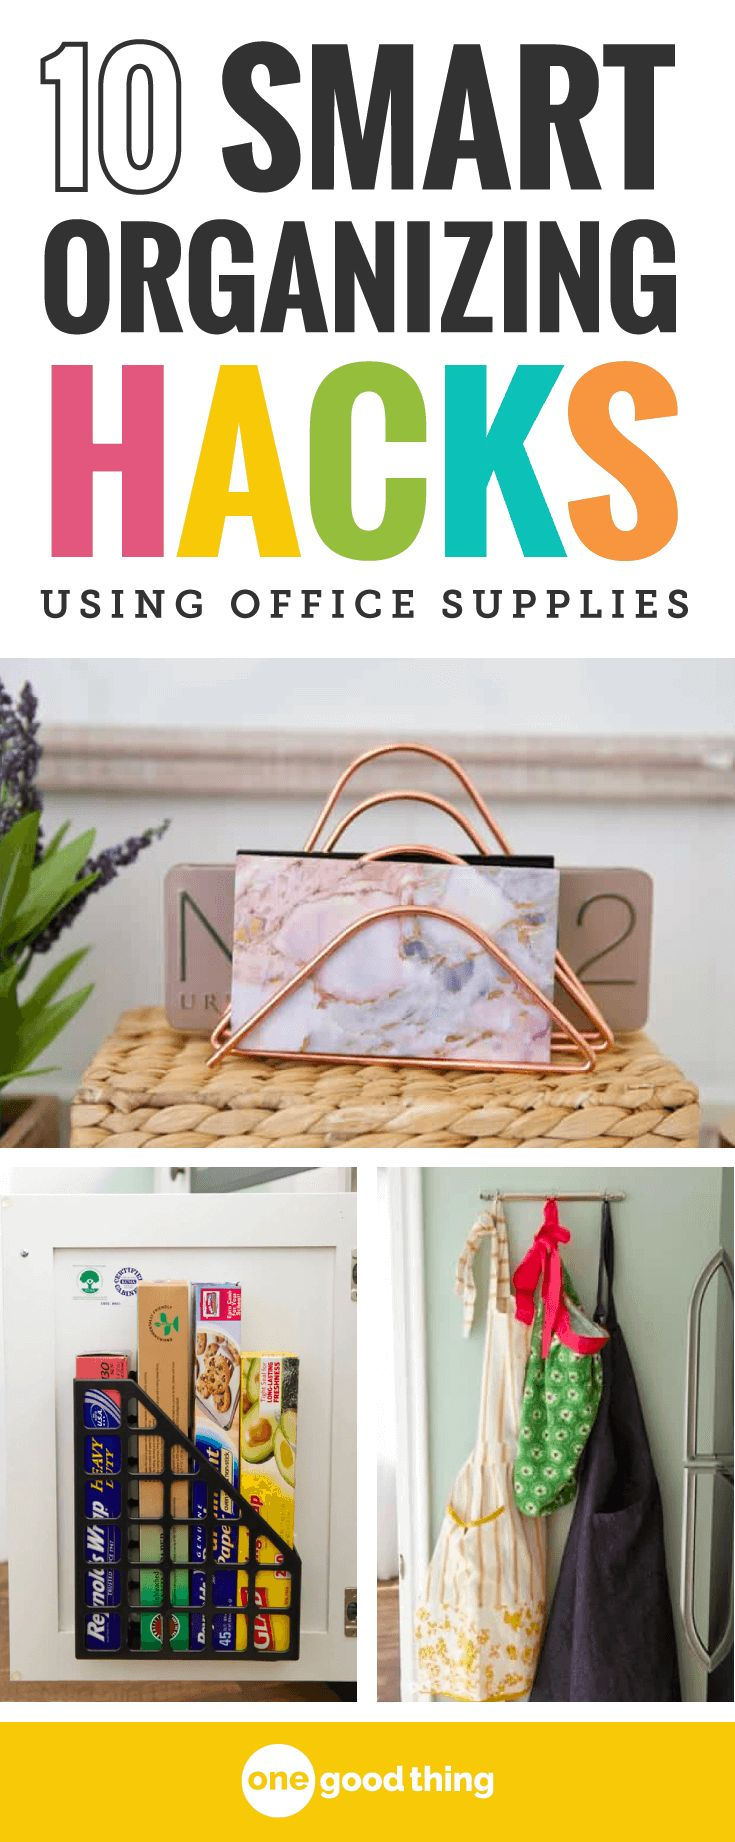 Get more organized by getting creative and resourceful with what you already have! Channel your inner MacGyver with these 11 organization hacks using everyday office supplies. #organizationhacks #officesupplies